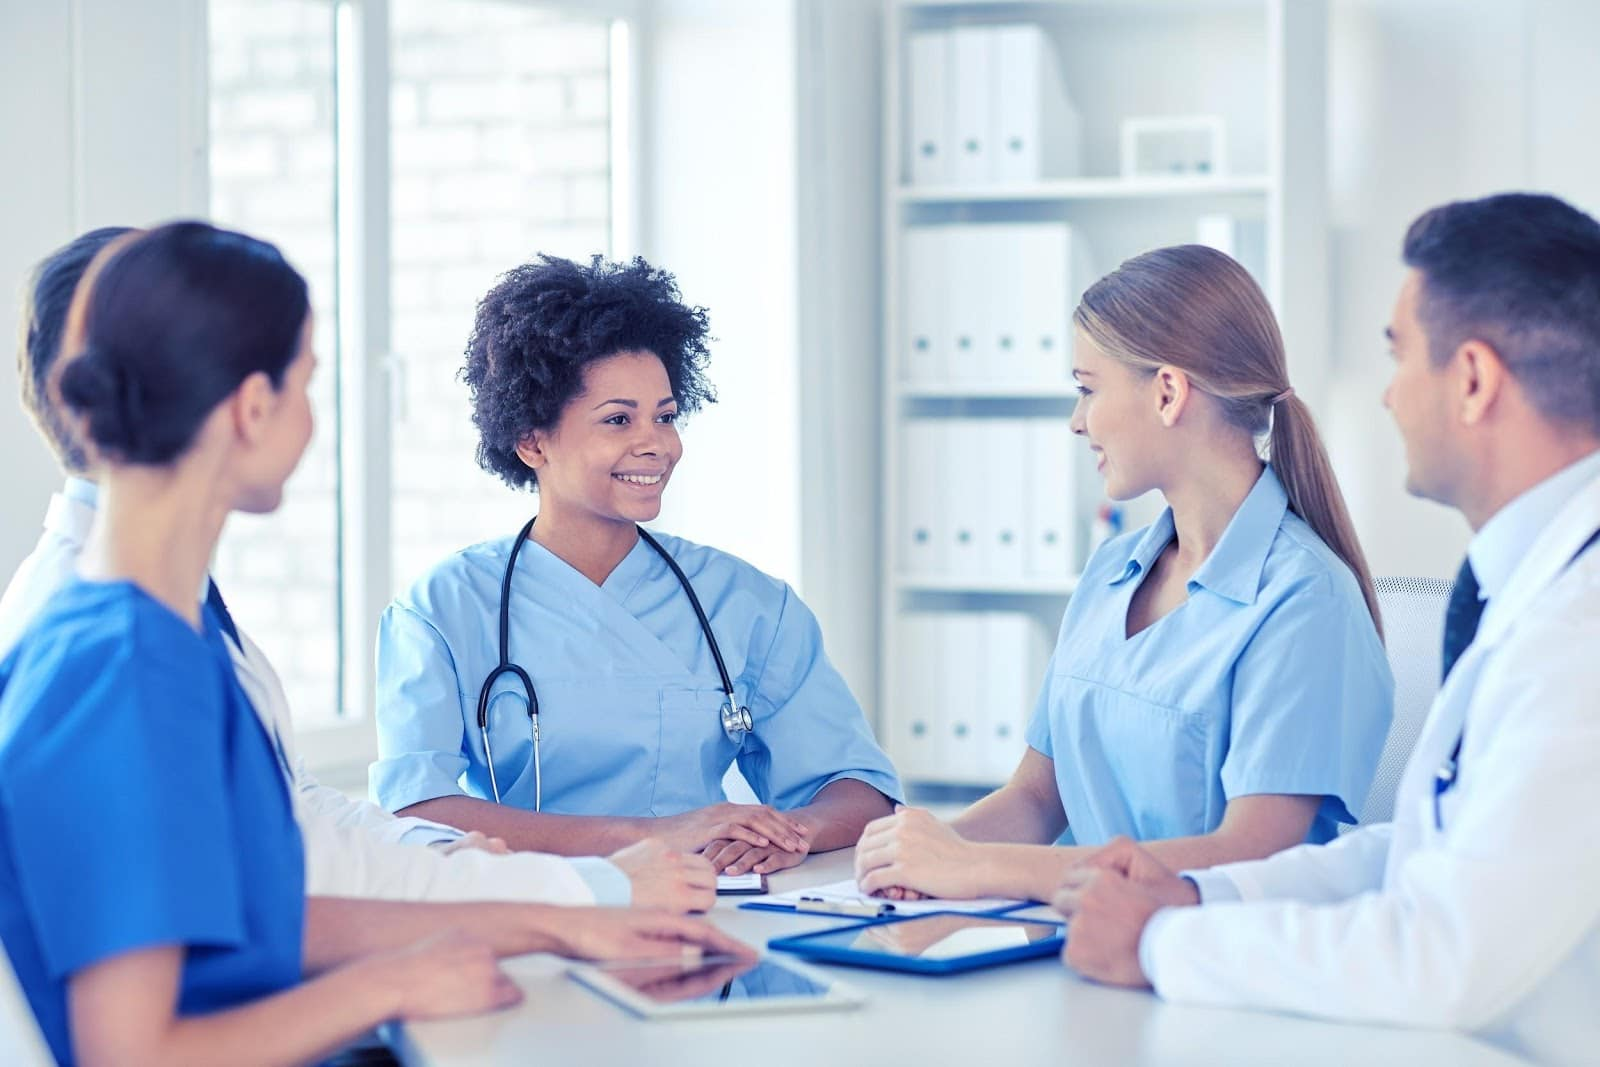 Group meeting for 2020 Year of the Nurse